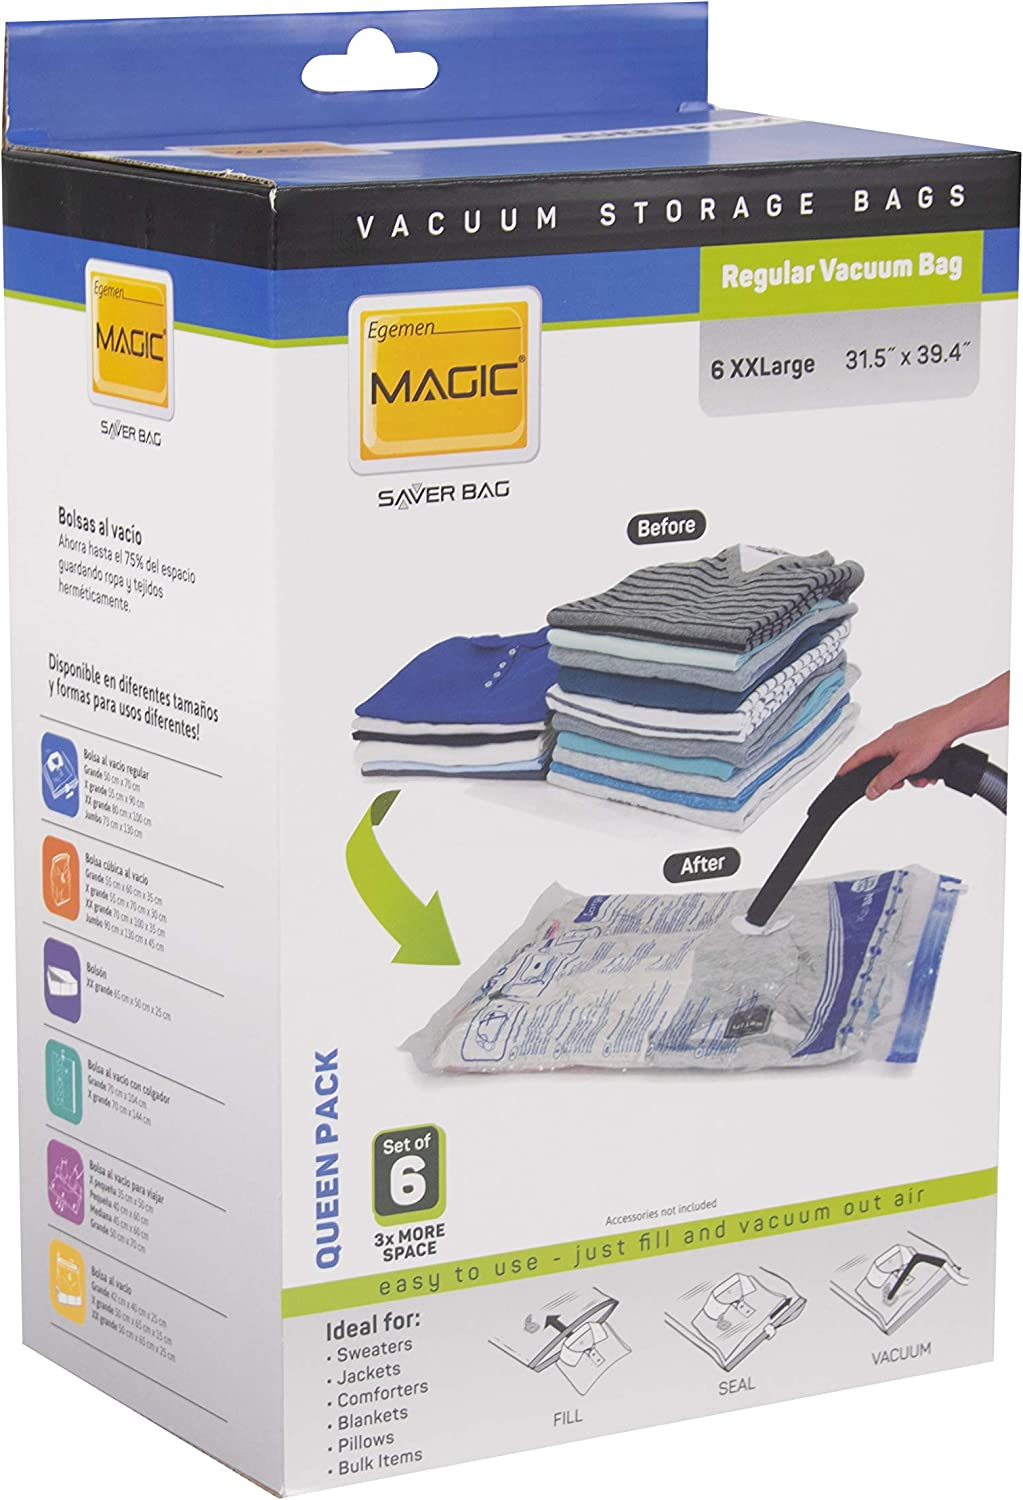 Magic Saver Vacuum Storage Bags 30''x40'' XXLarge Size, Pack of 6, Space Saver Bags for Quilts, Pillows, Clothes